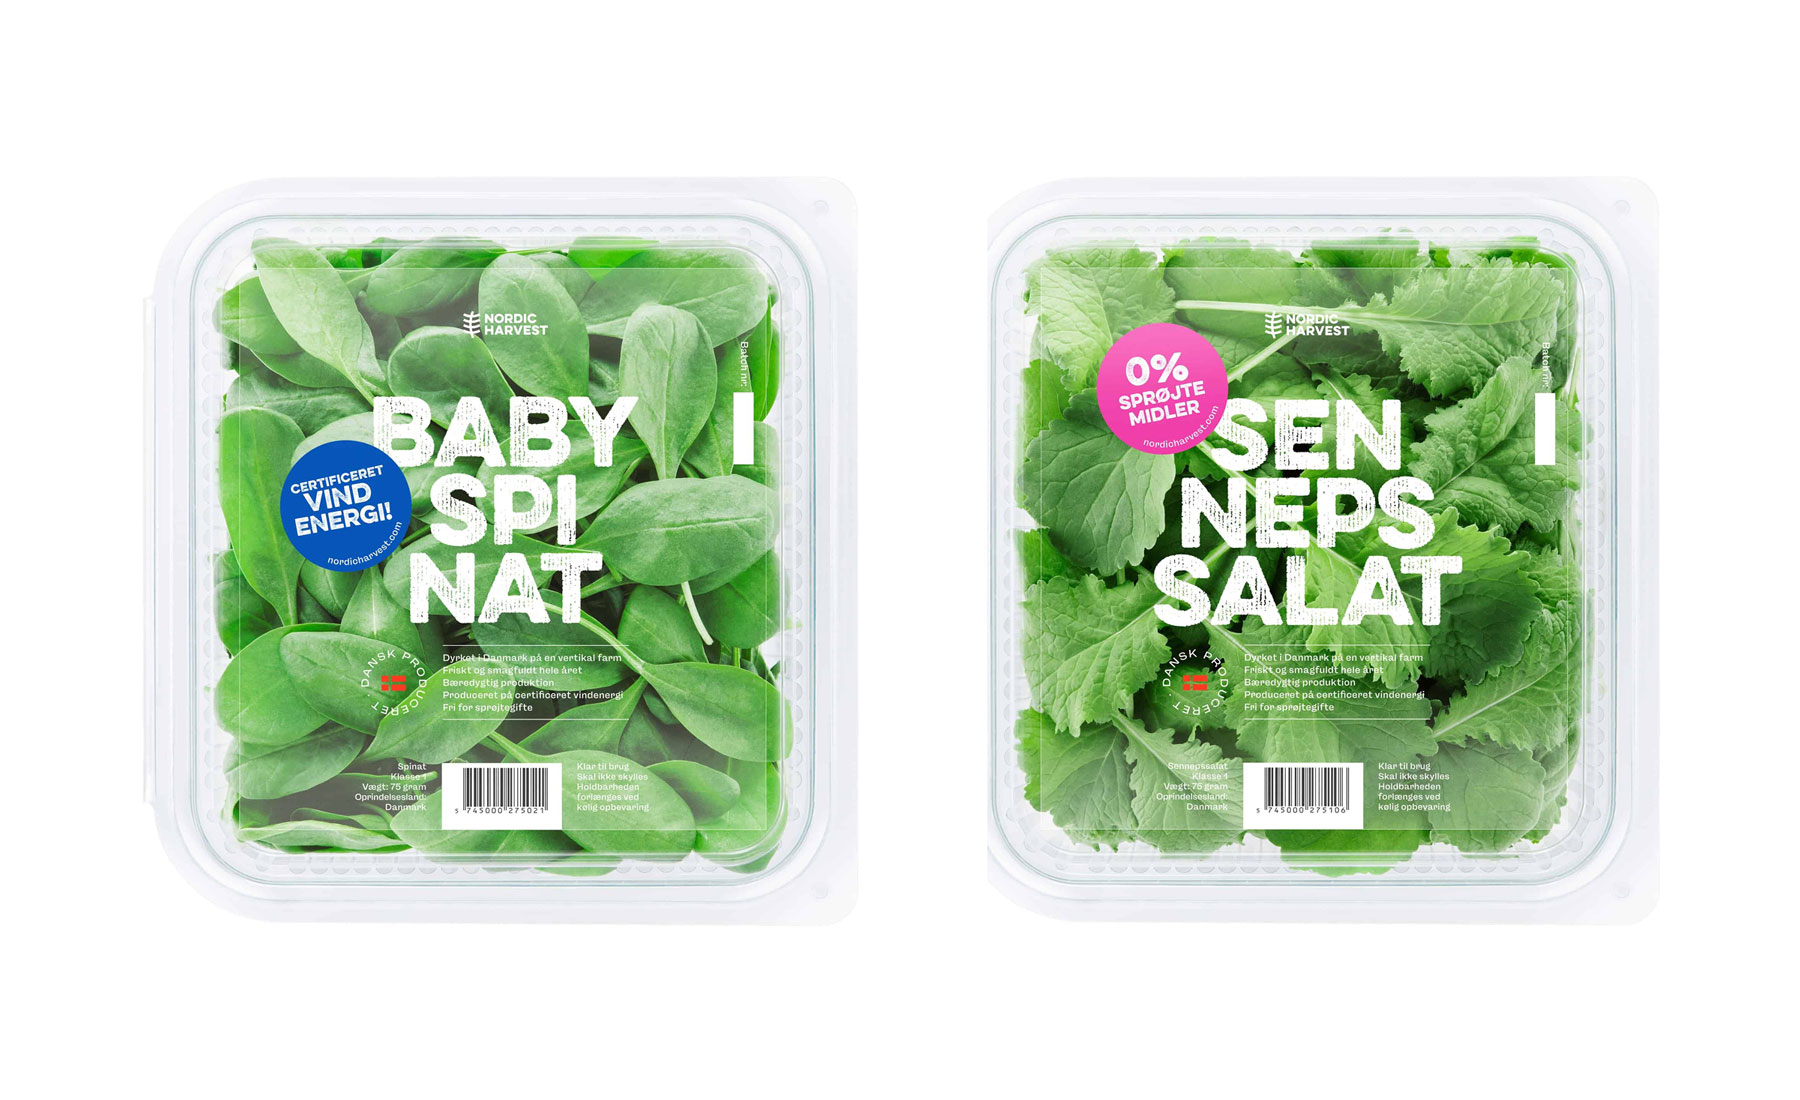 the new Nordic Harvest design of packaging